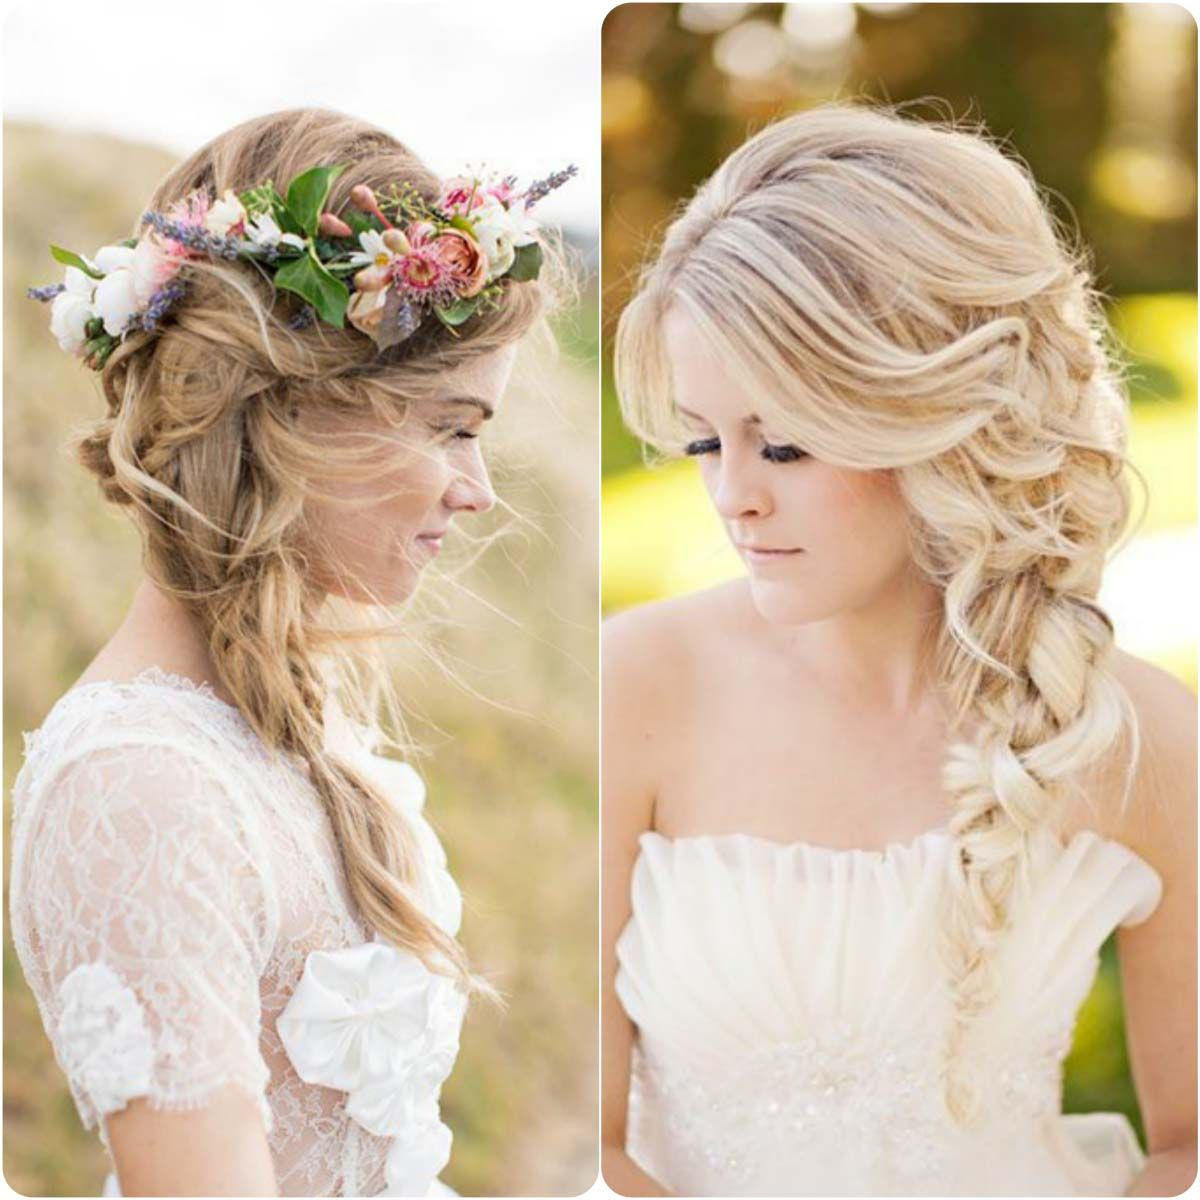 Wedding Hairstyles With Box Braids: Messy-Side-Braids...styloplanet.com_.jpg (1200×1200